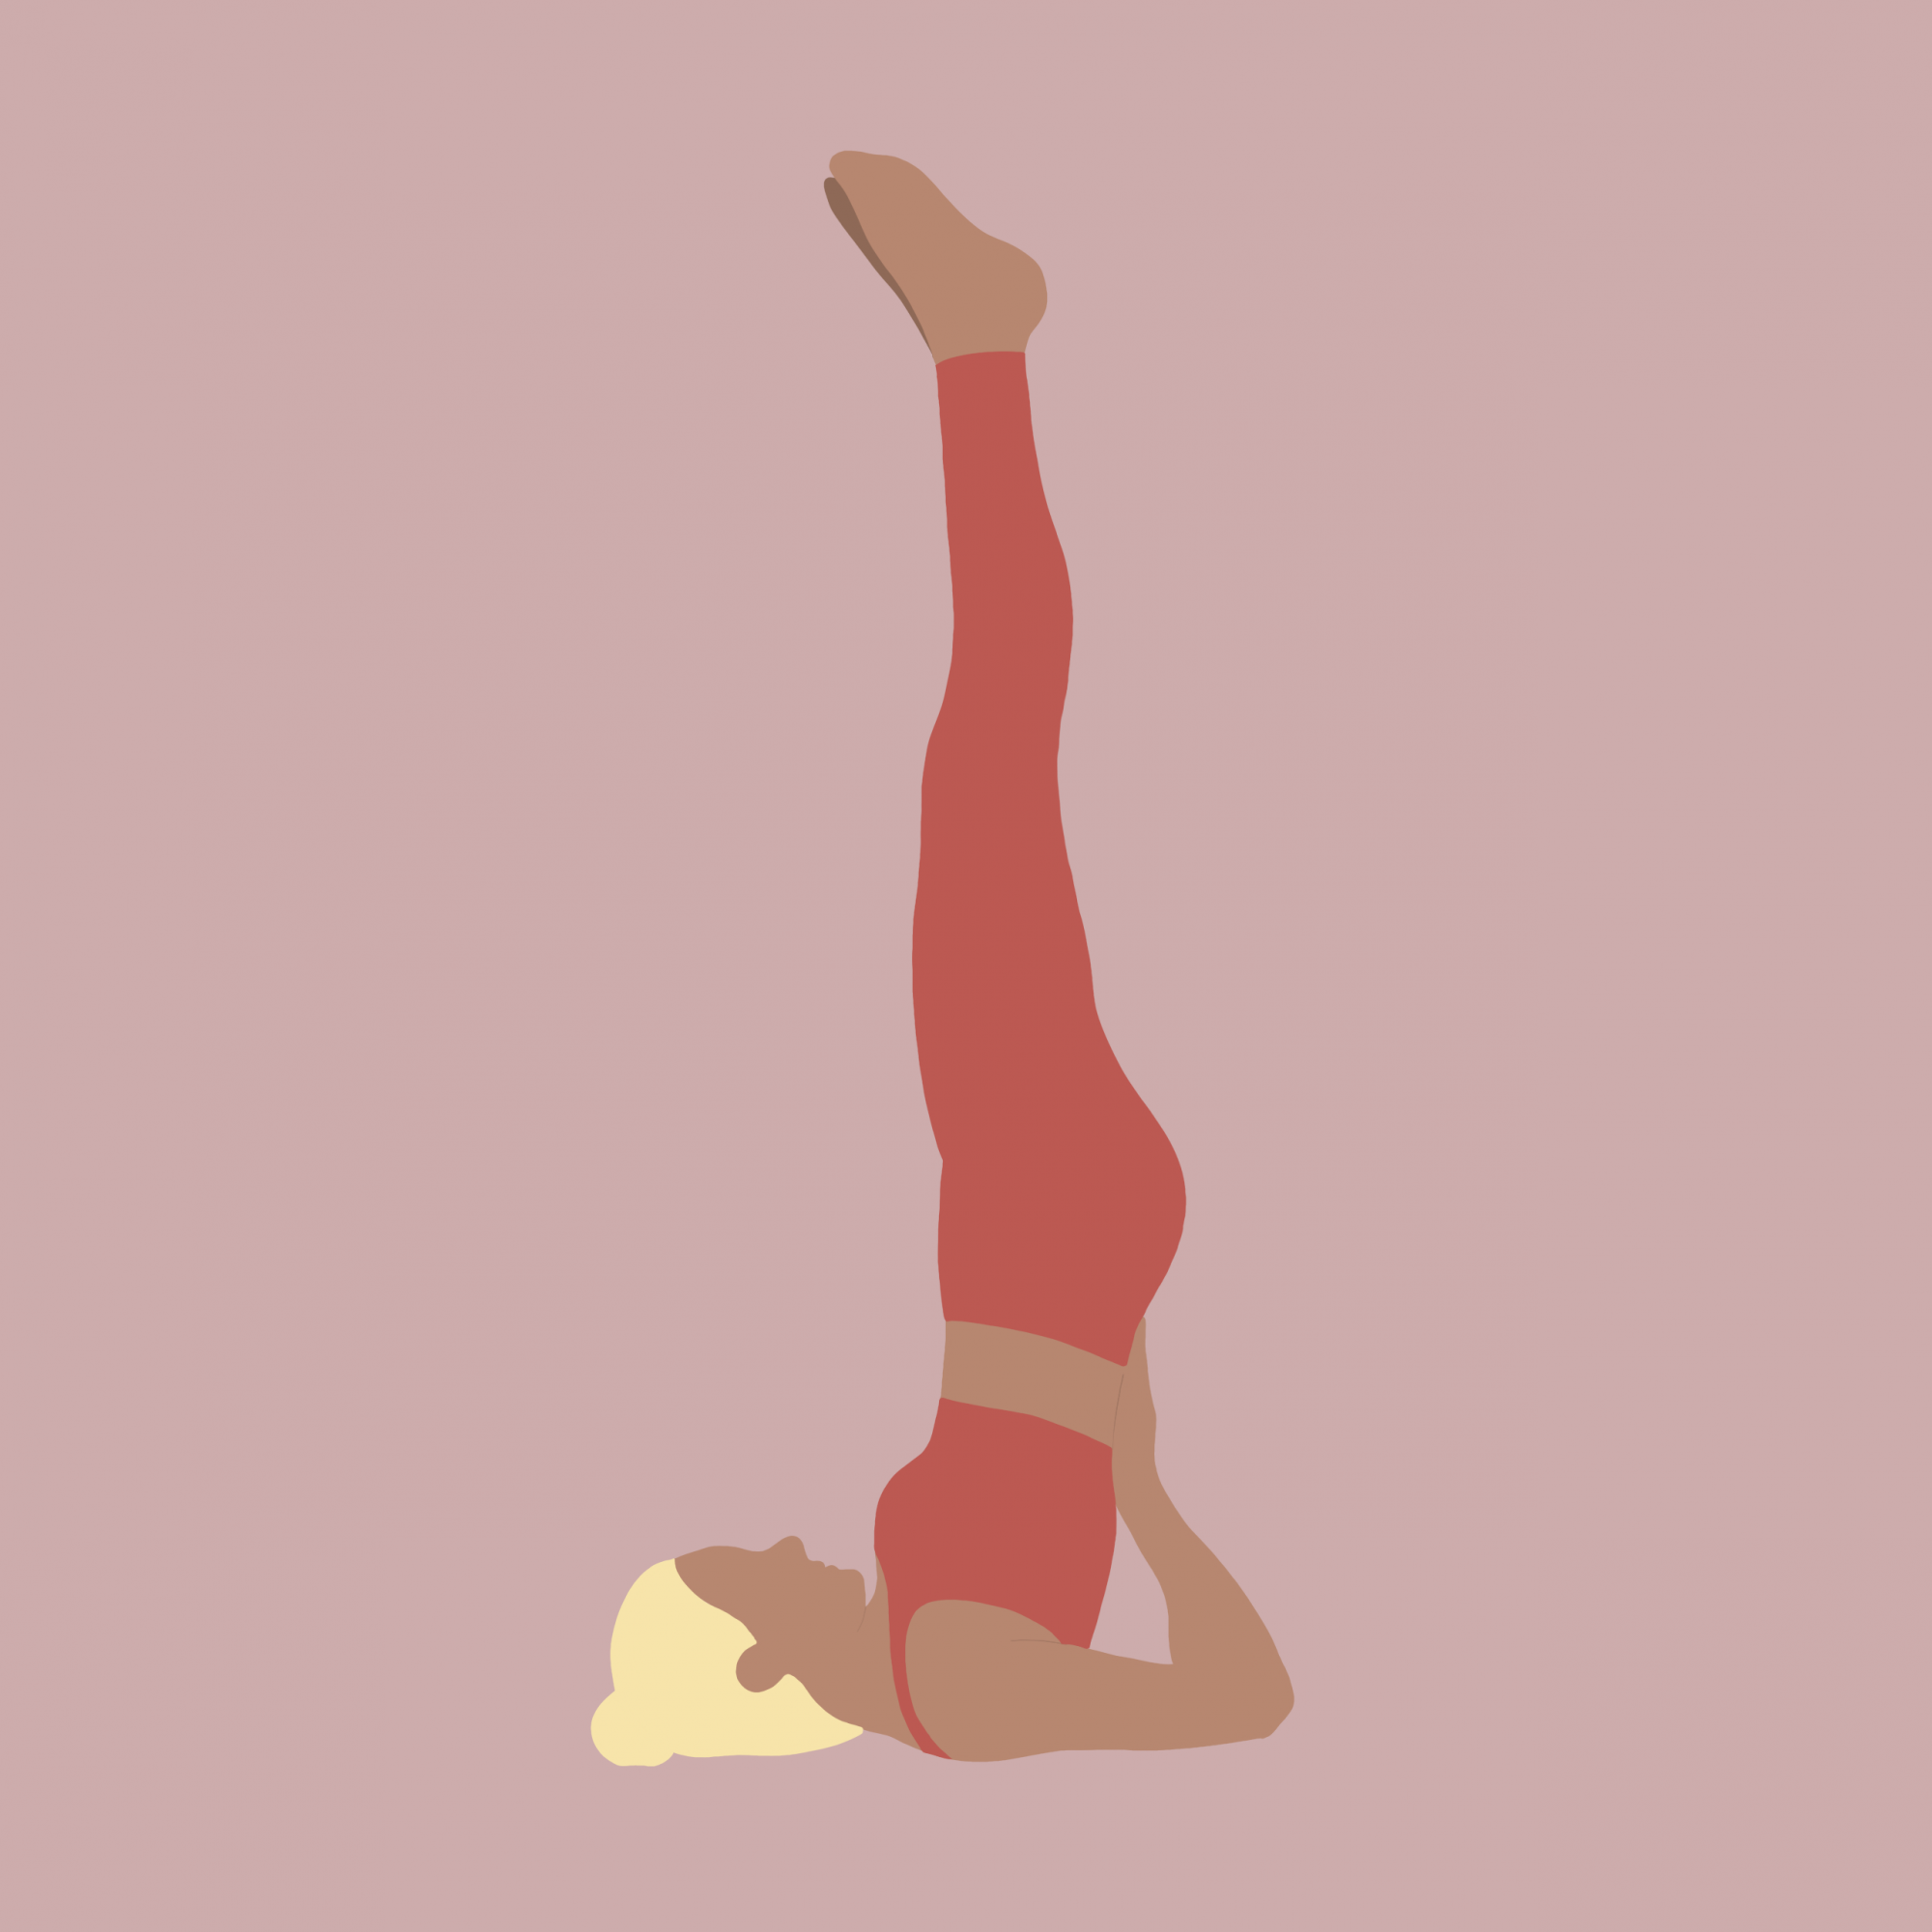 Illustration Yoga-Übung Schulterstand